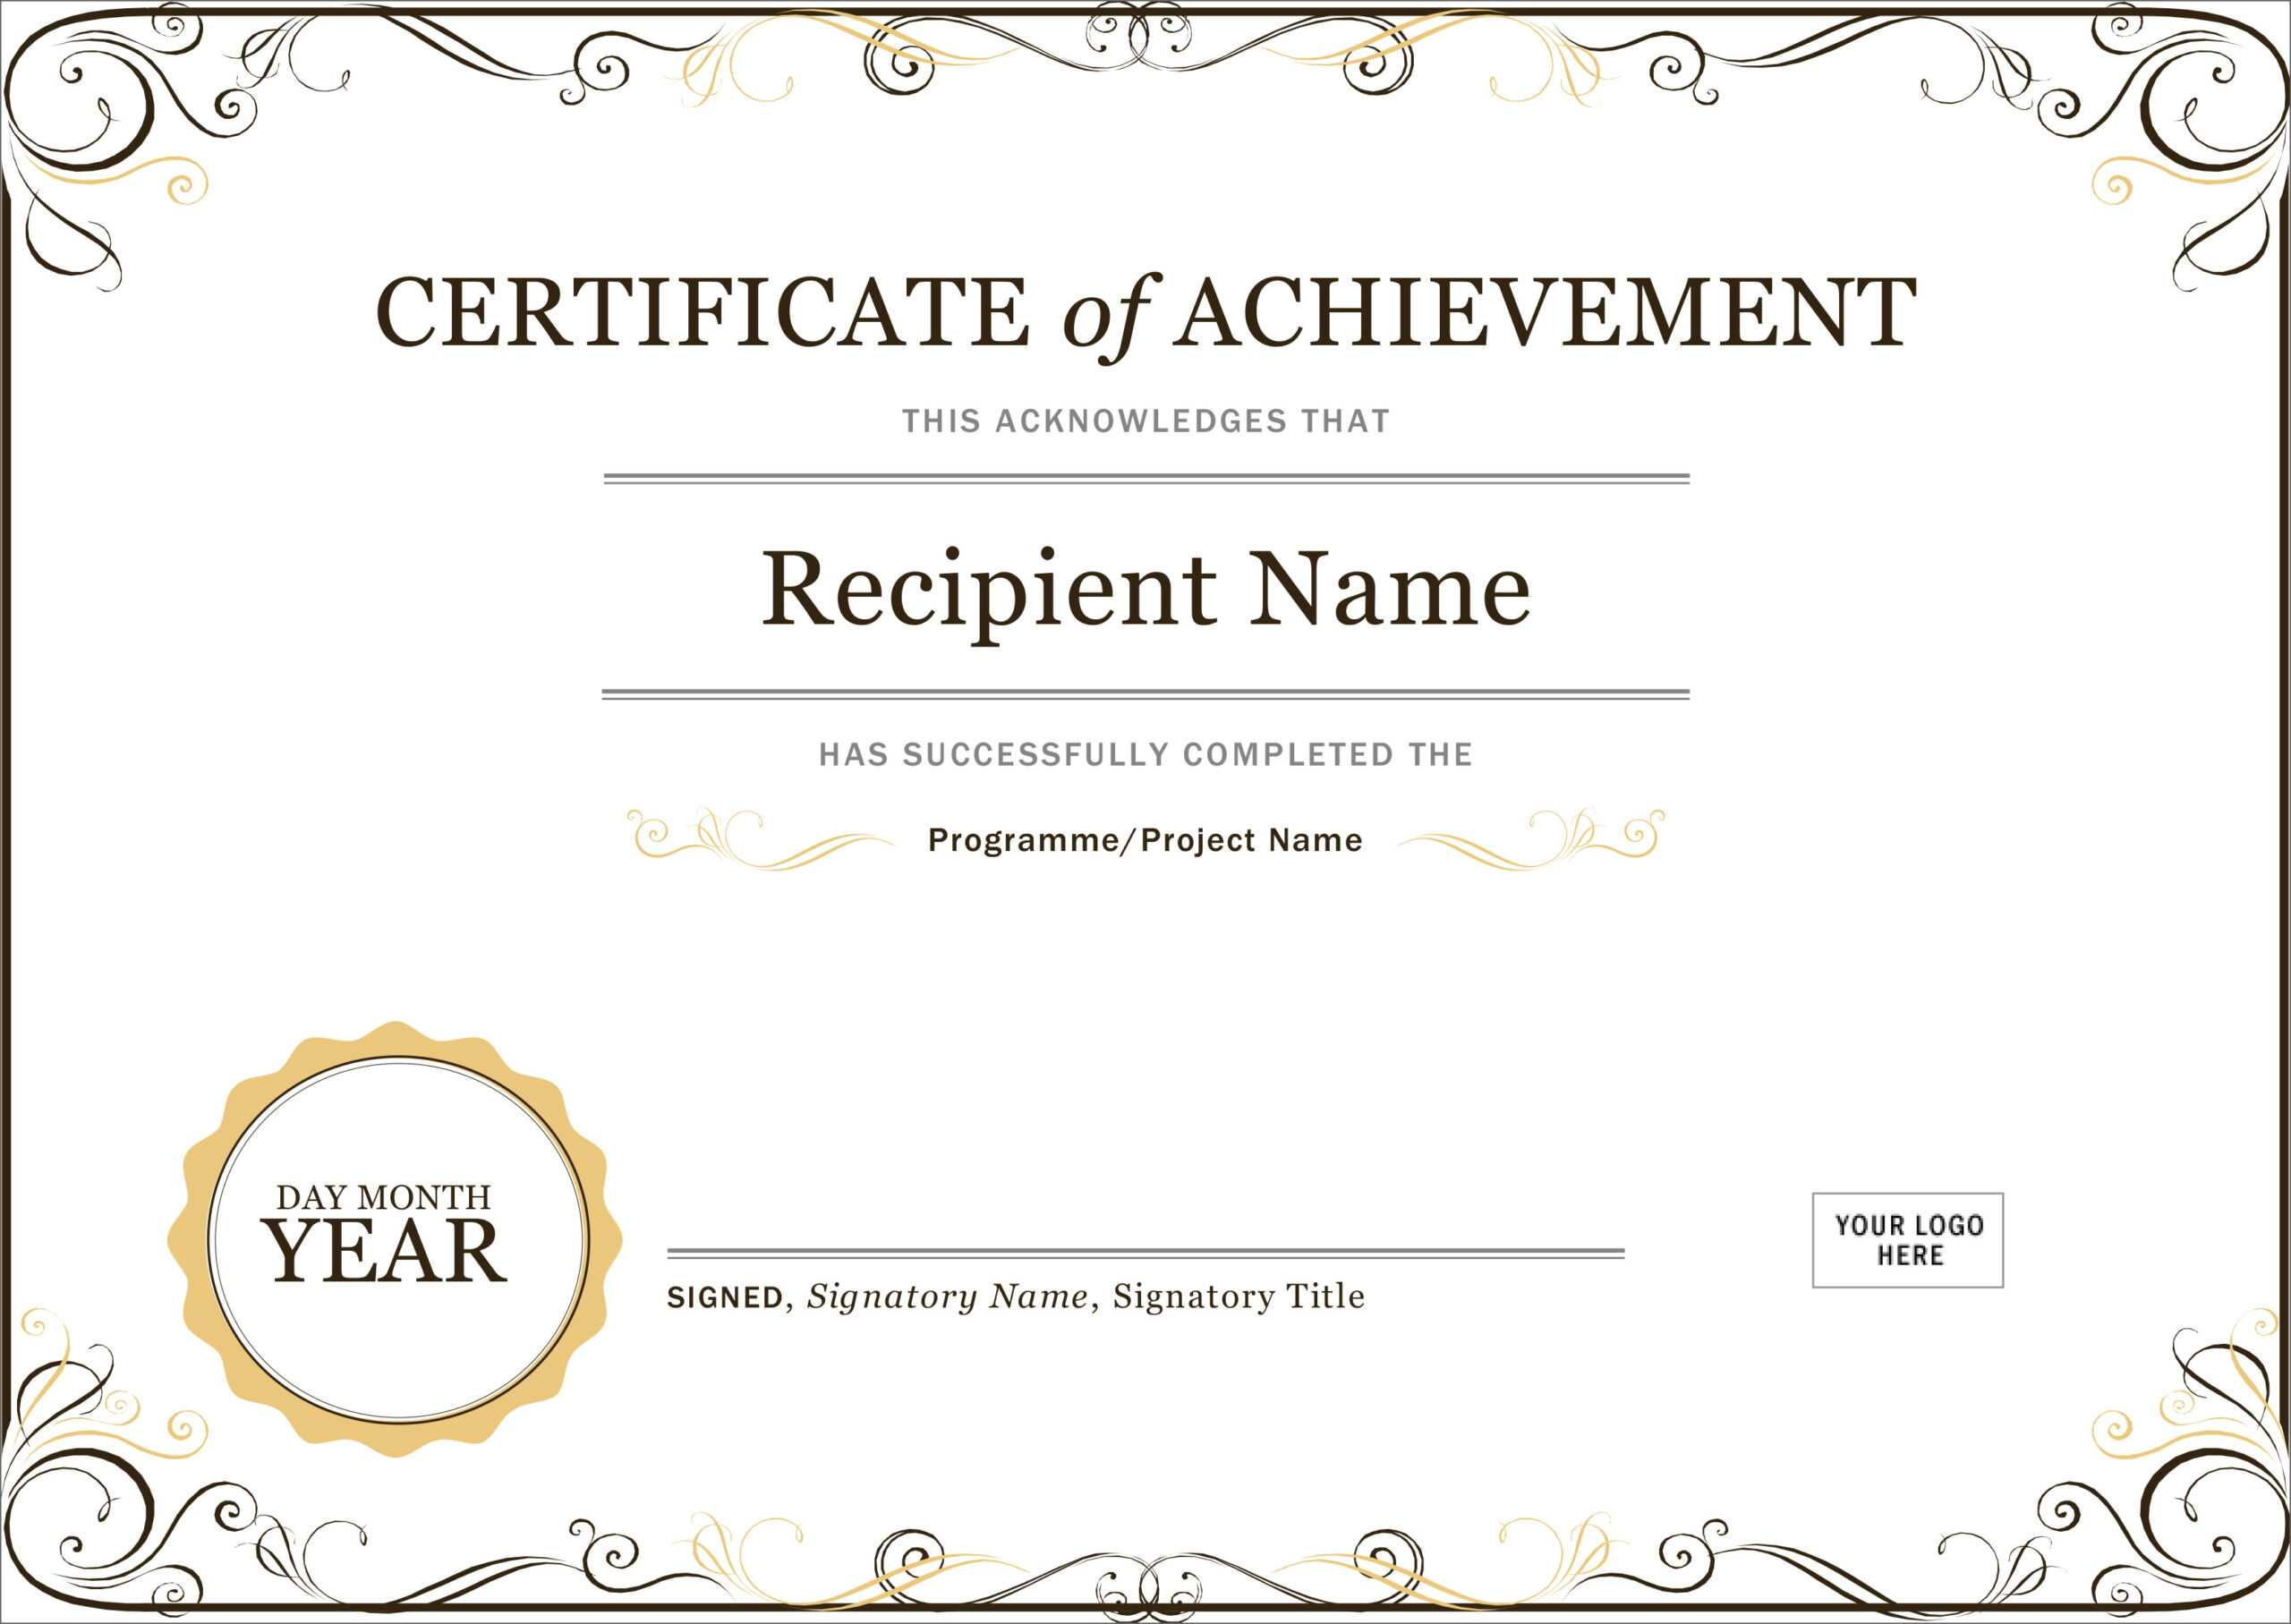 50 Free Creative Blank Certificate Templates In Psd With Regard To Word 2013 Certificate Template